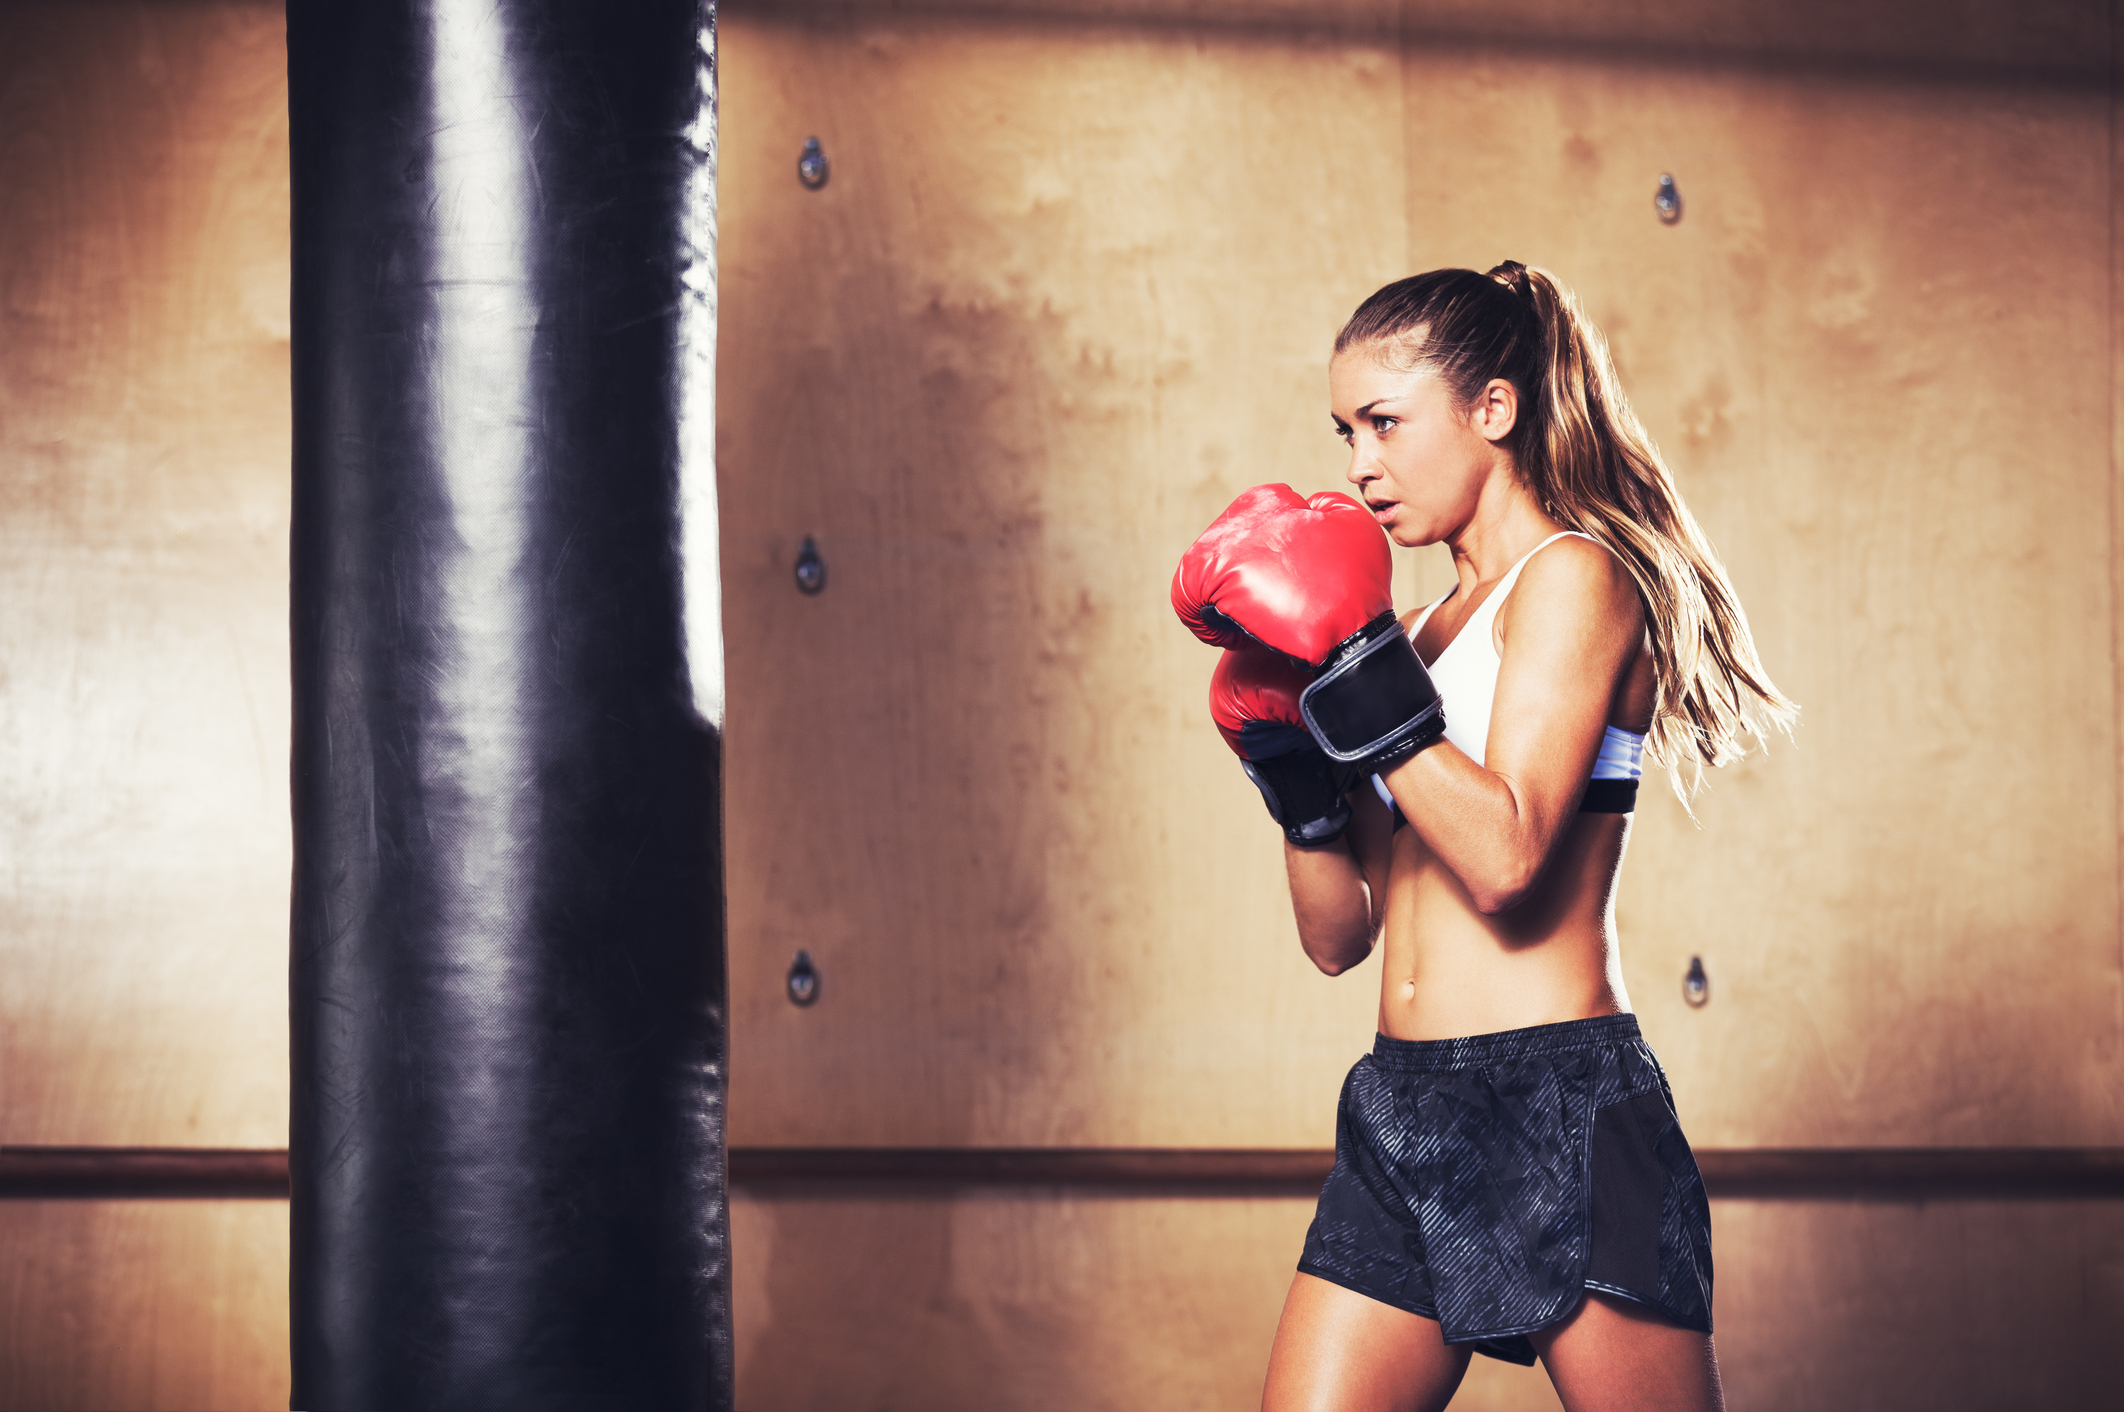 Boxing Training for Women, Boxing Stance